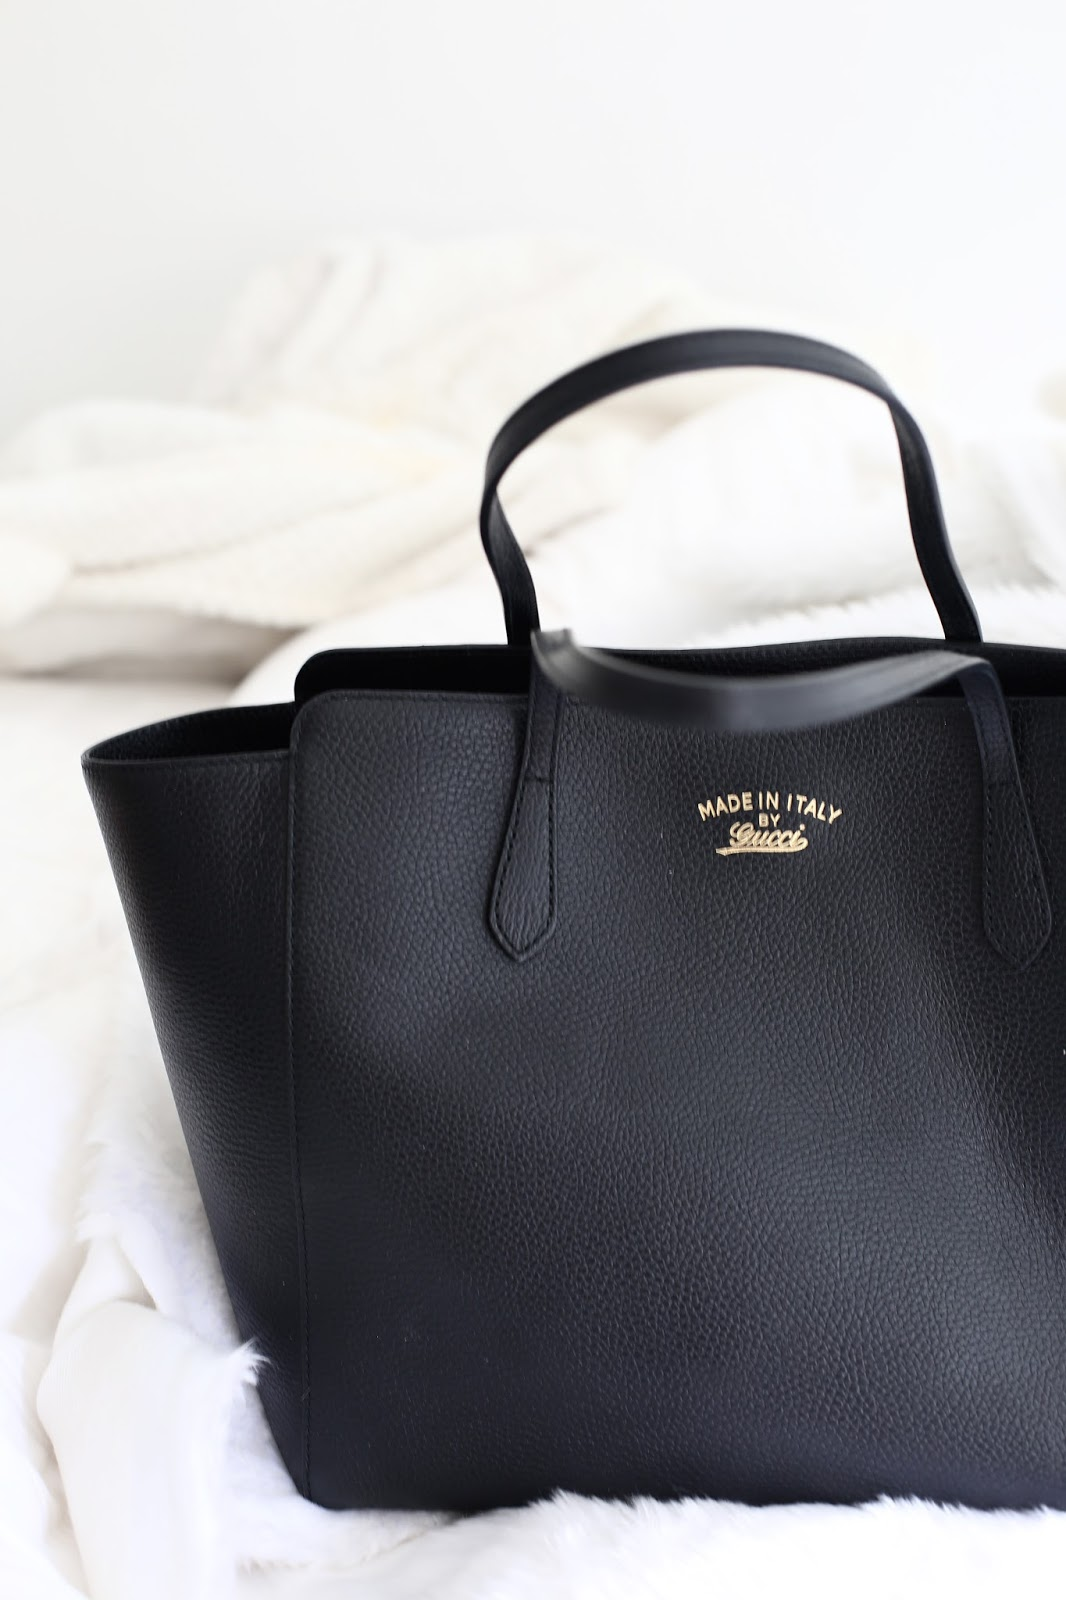 gucci swing bag in black